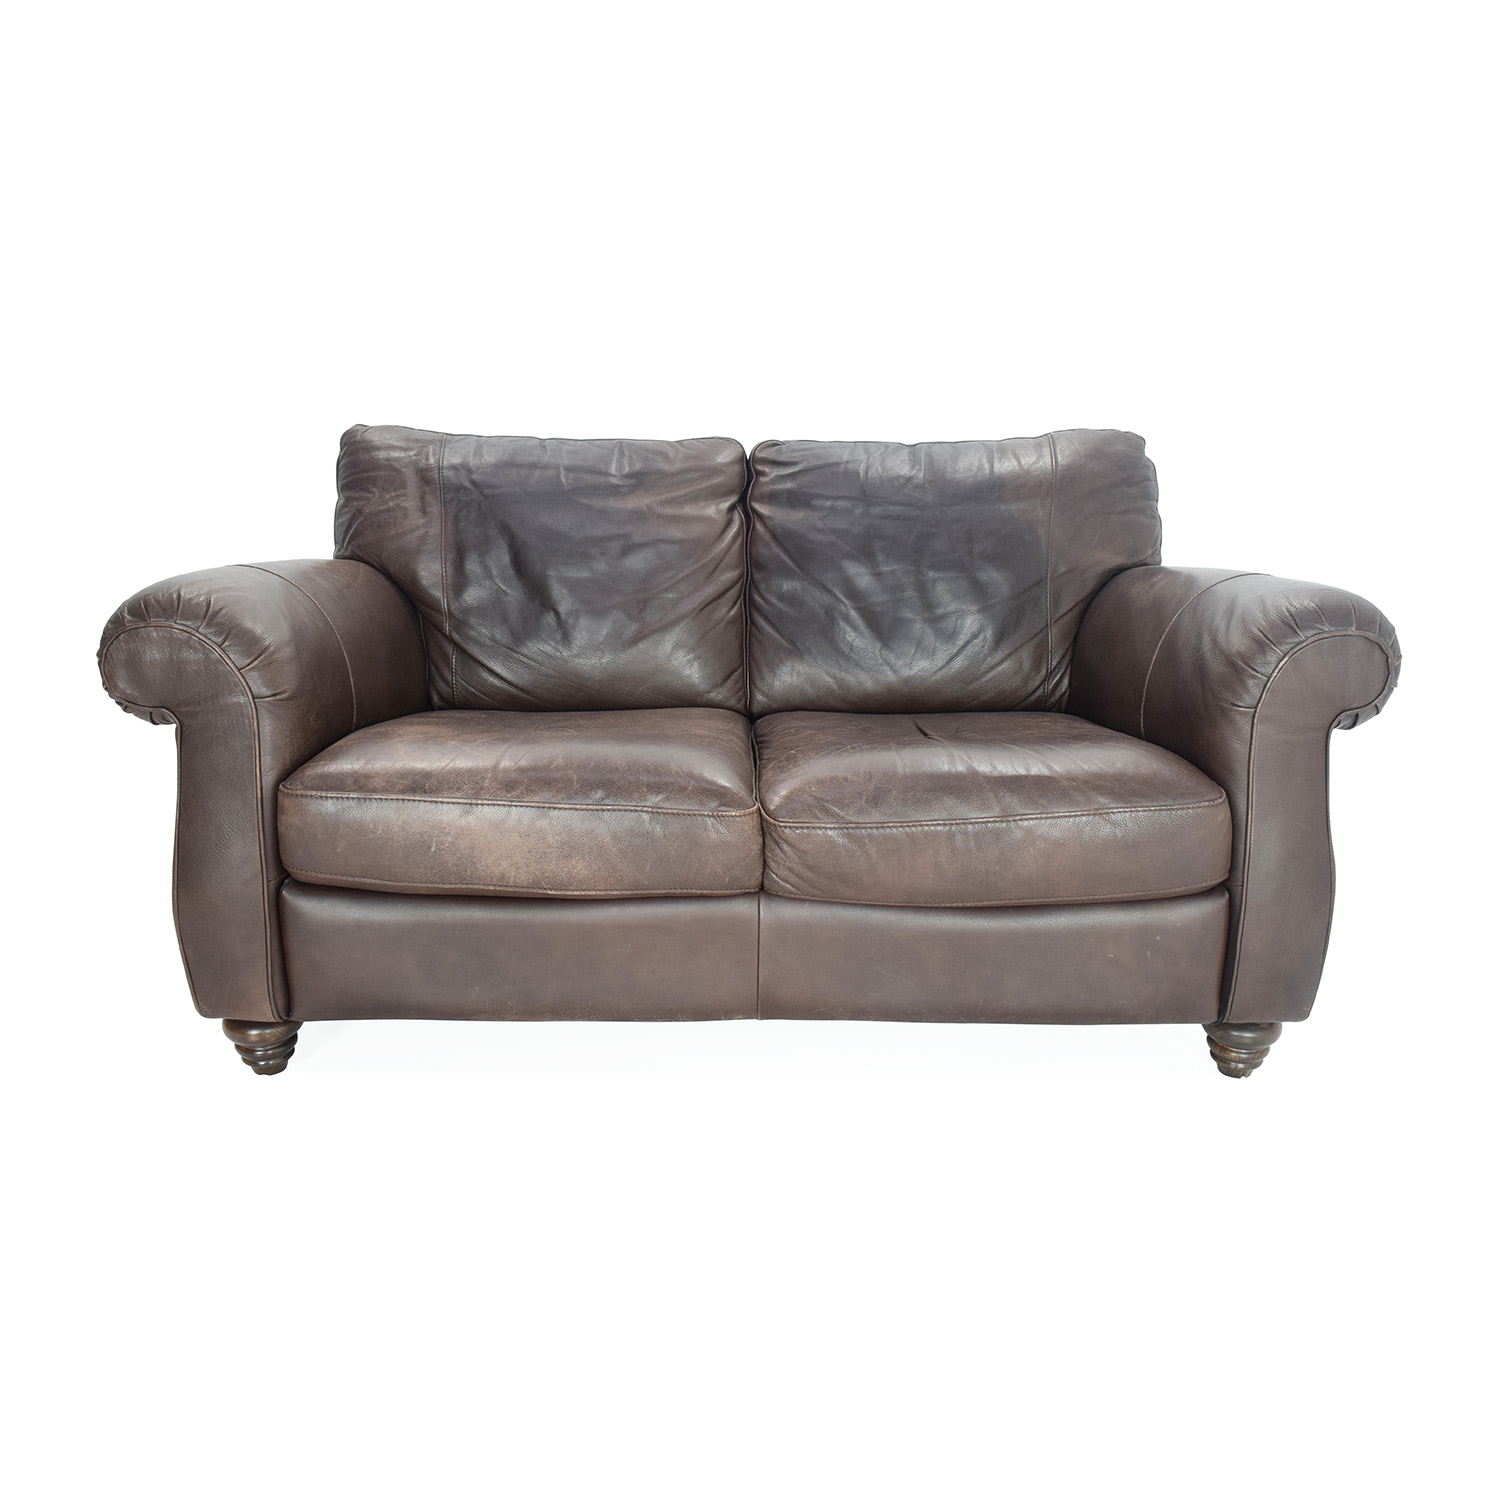 Swell Natuzzi Leather Loveseat Caraccident5 Cool Chair Designs And Ideas Caraccident5Info